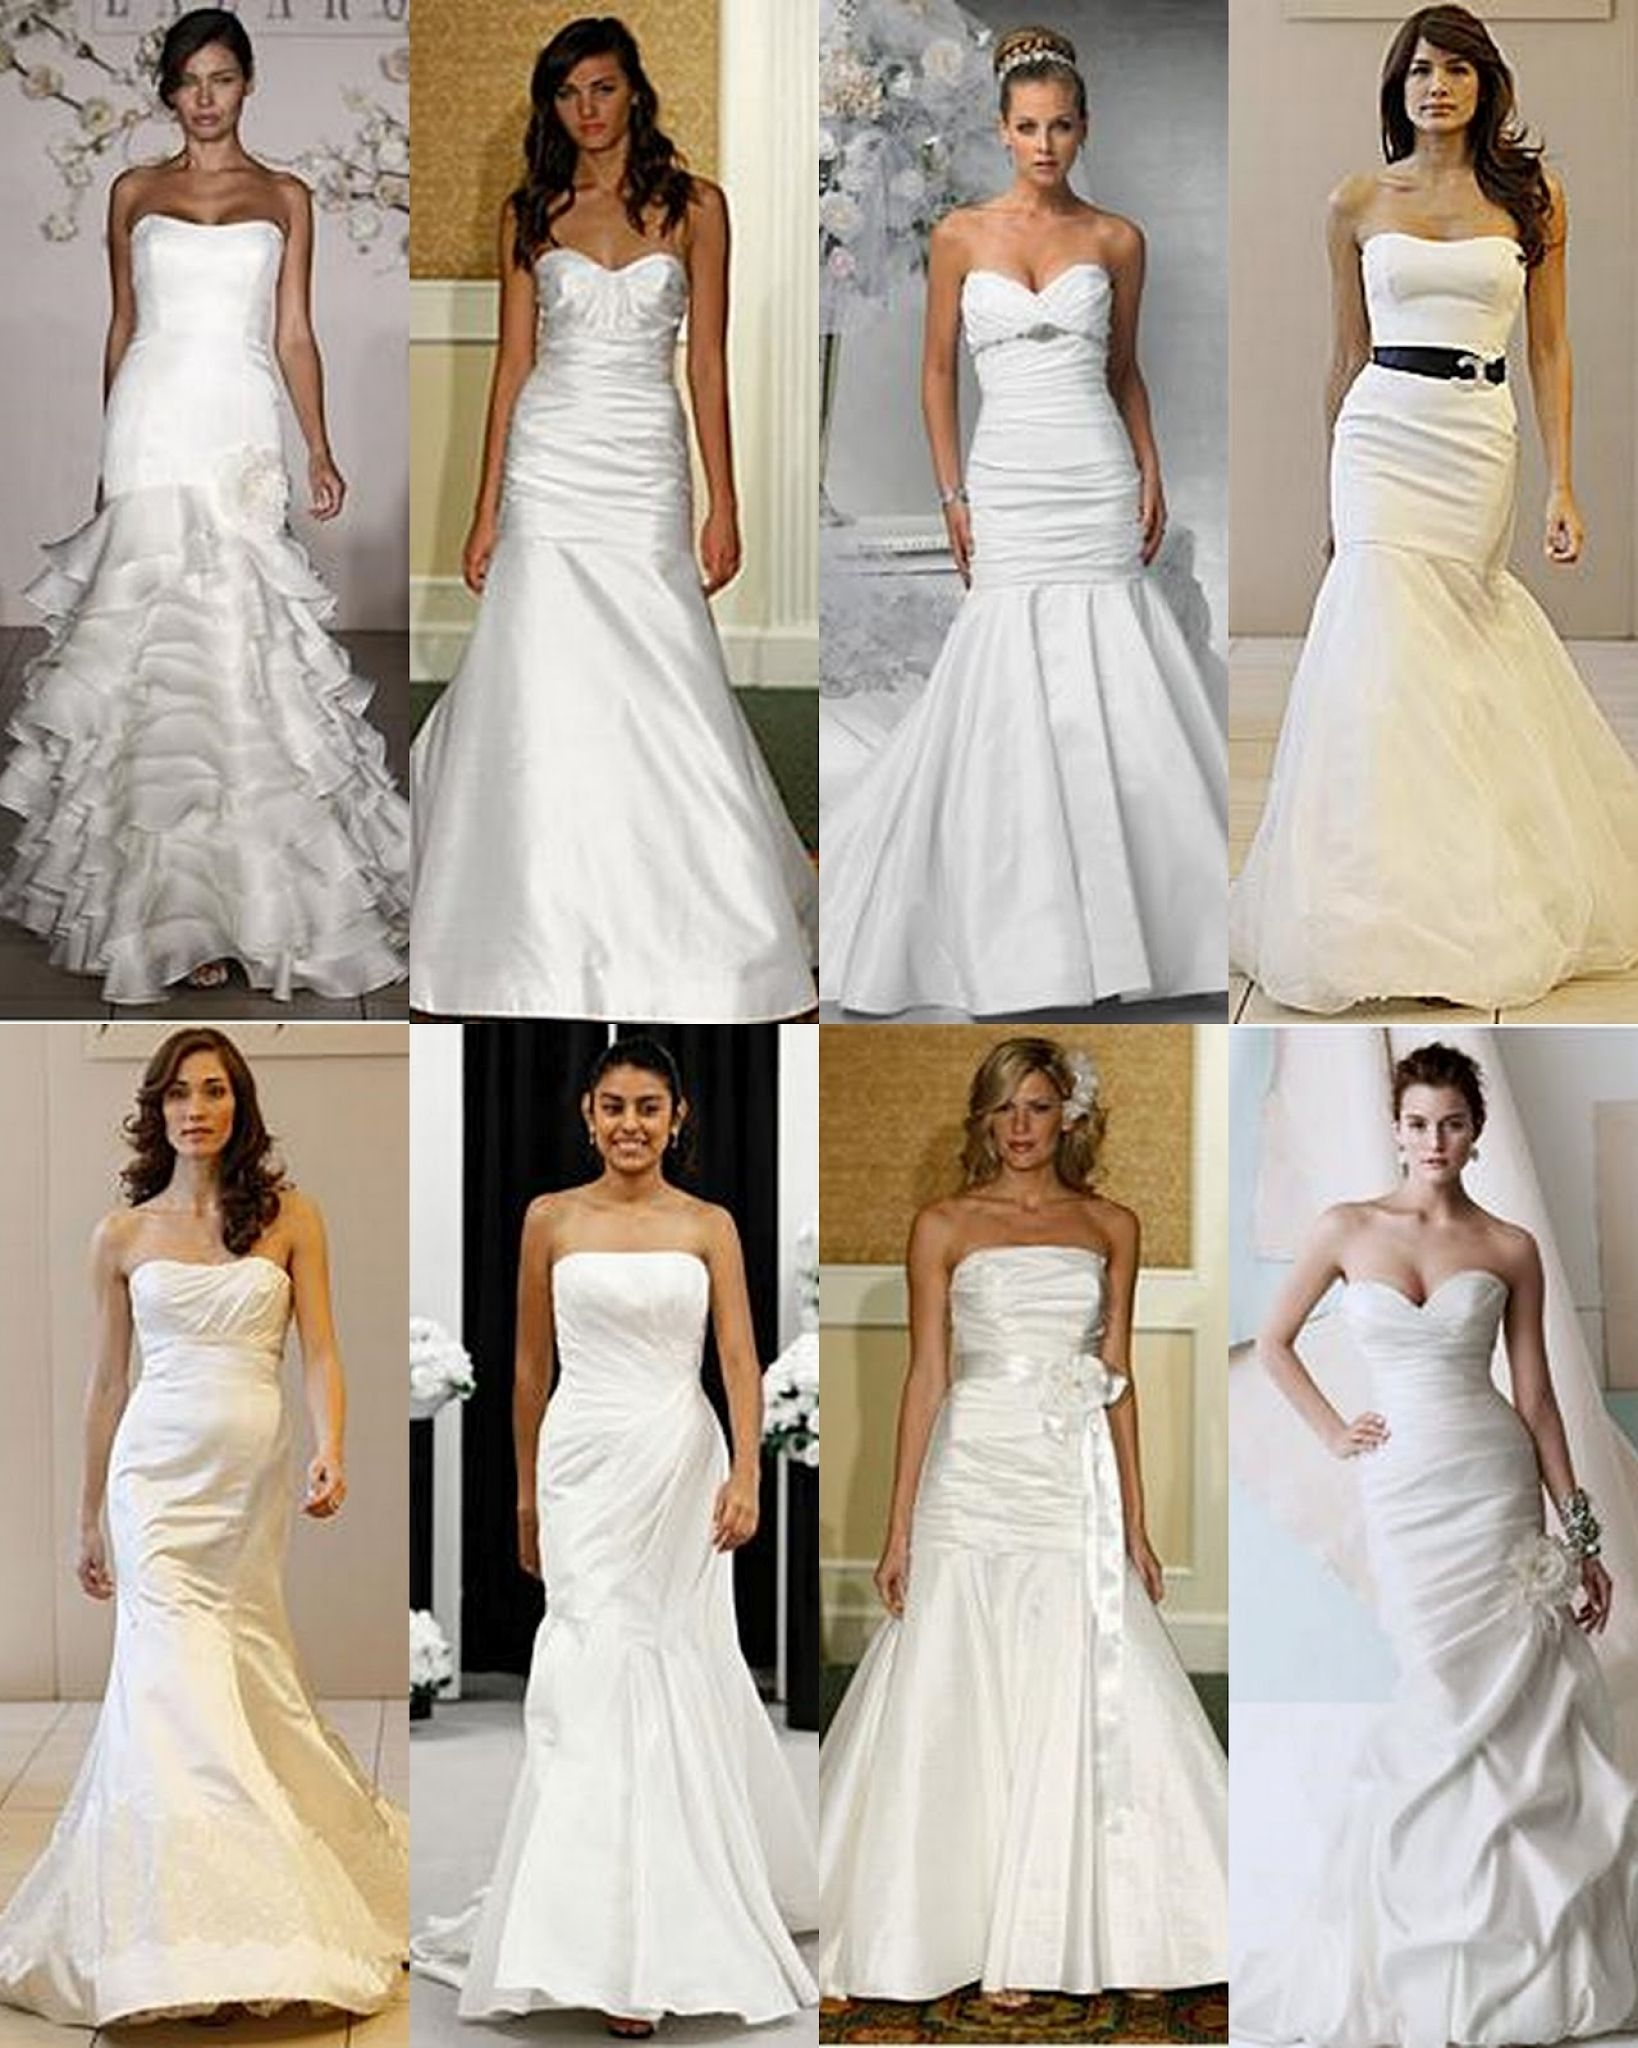 Womens dresses wedding guest  different style wedding dresses  womenus dresses for wedding guest